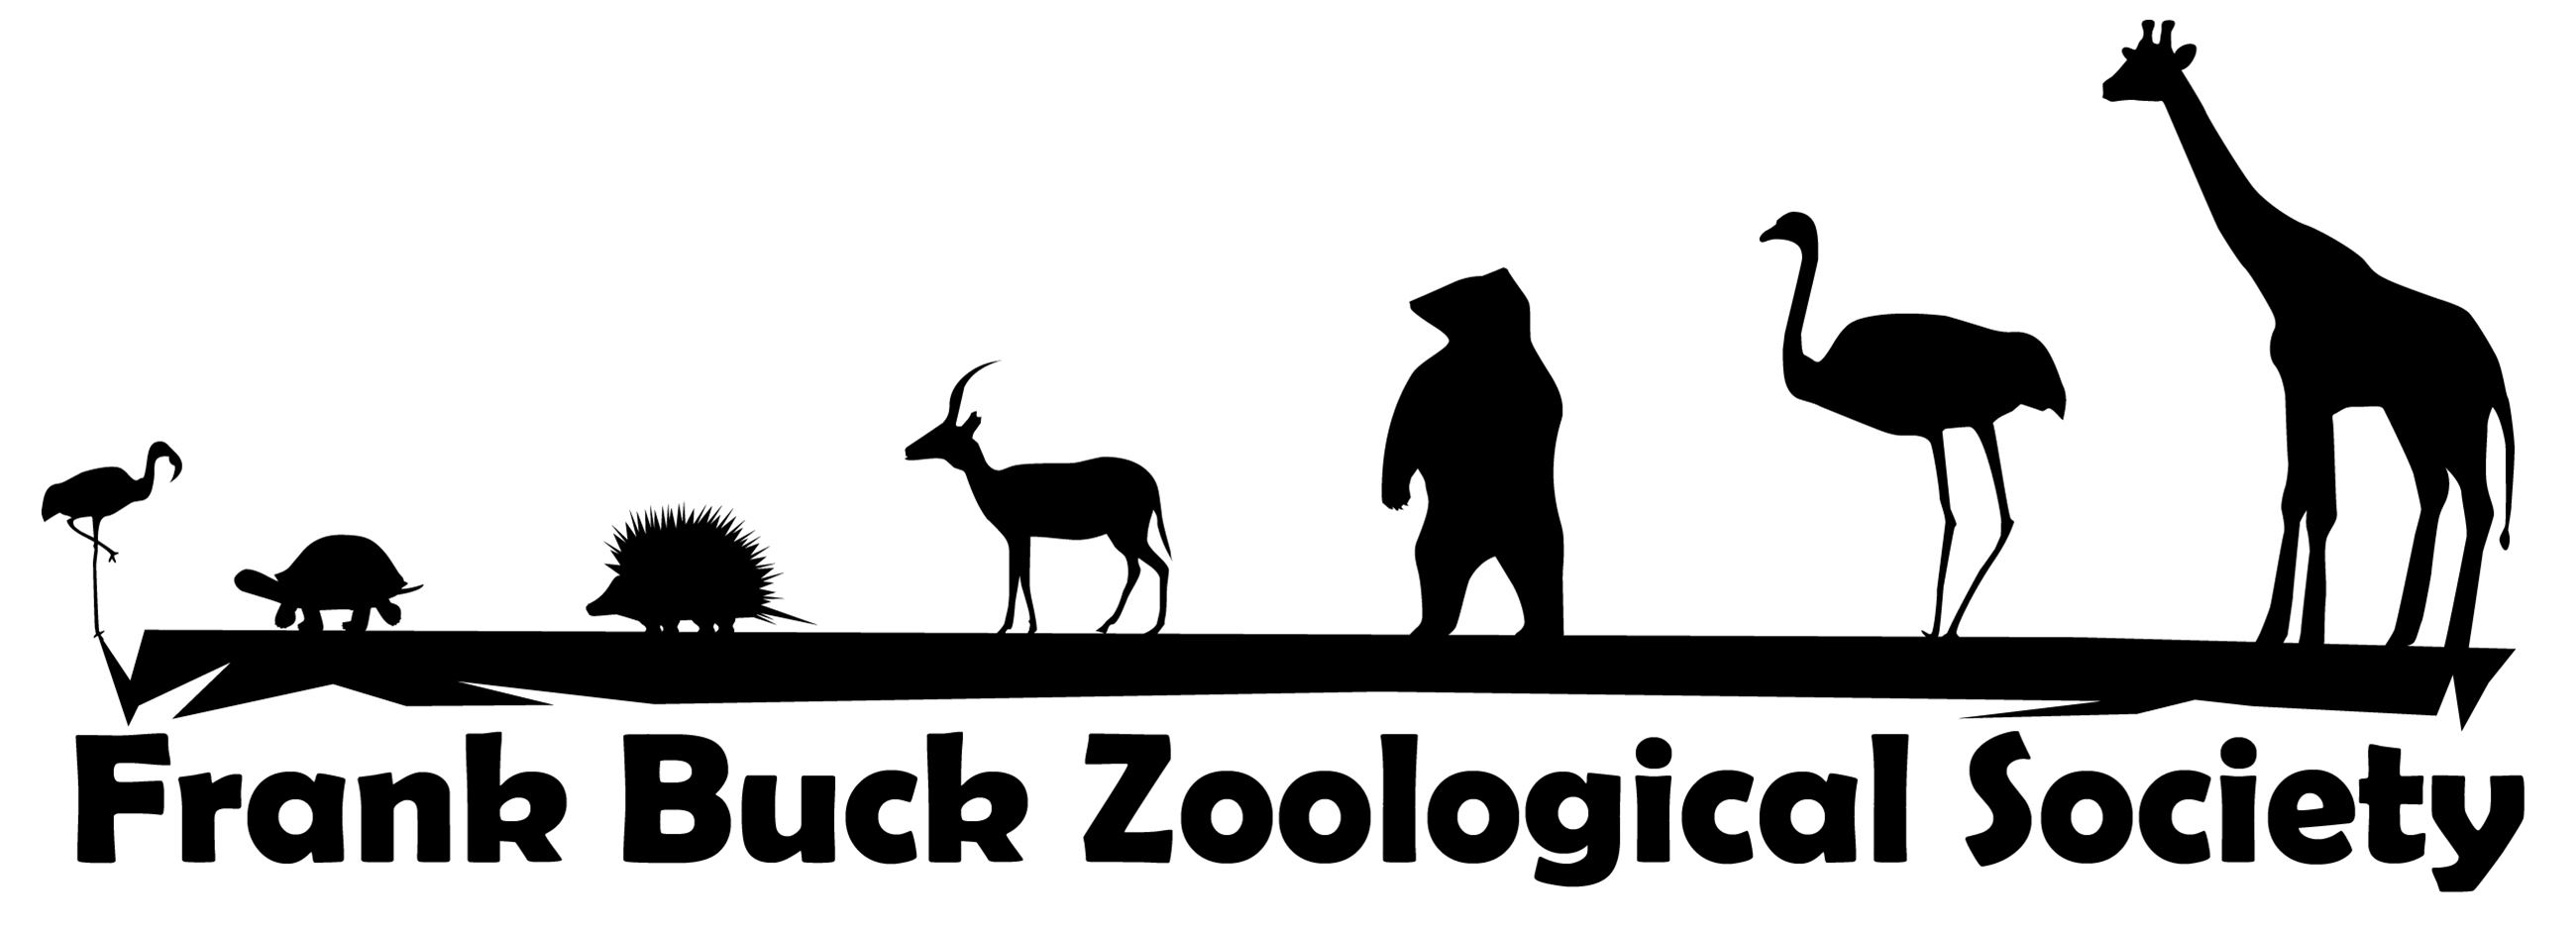 Frank Buck Zoological Society Logo